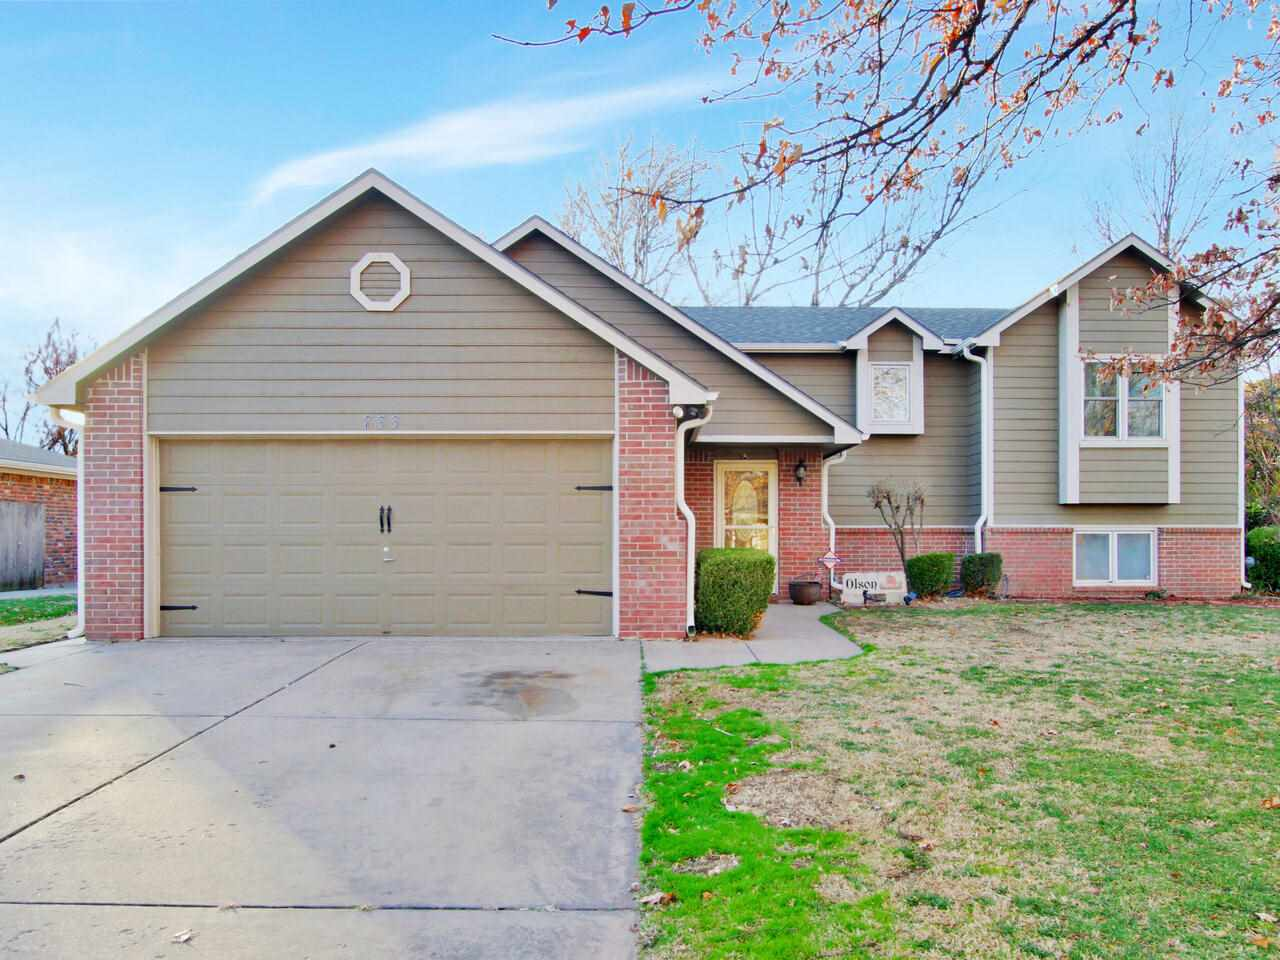 Don't miss your opportunity to become the new homeowner of this 5 bed, 3 bath home, nestled in quiet